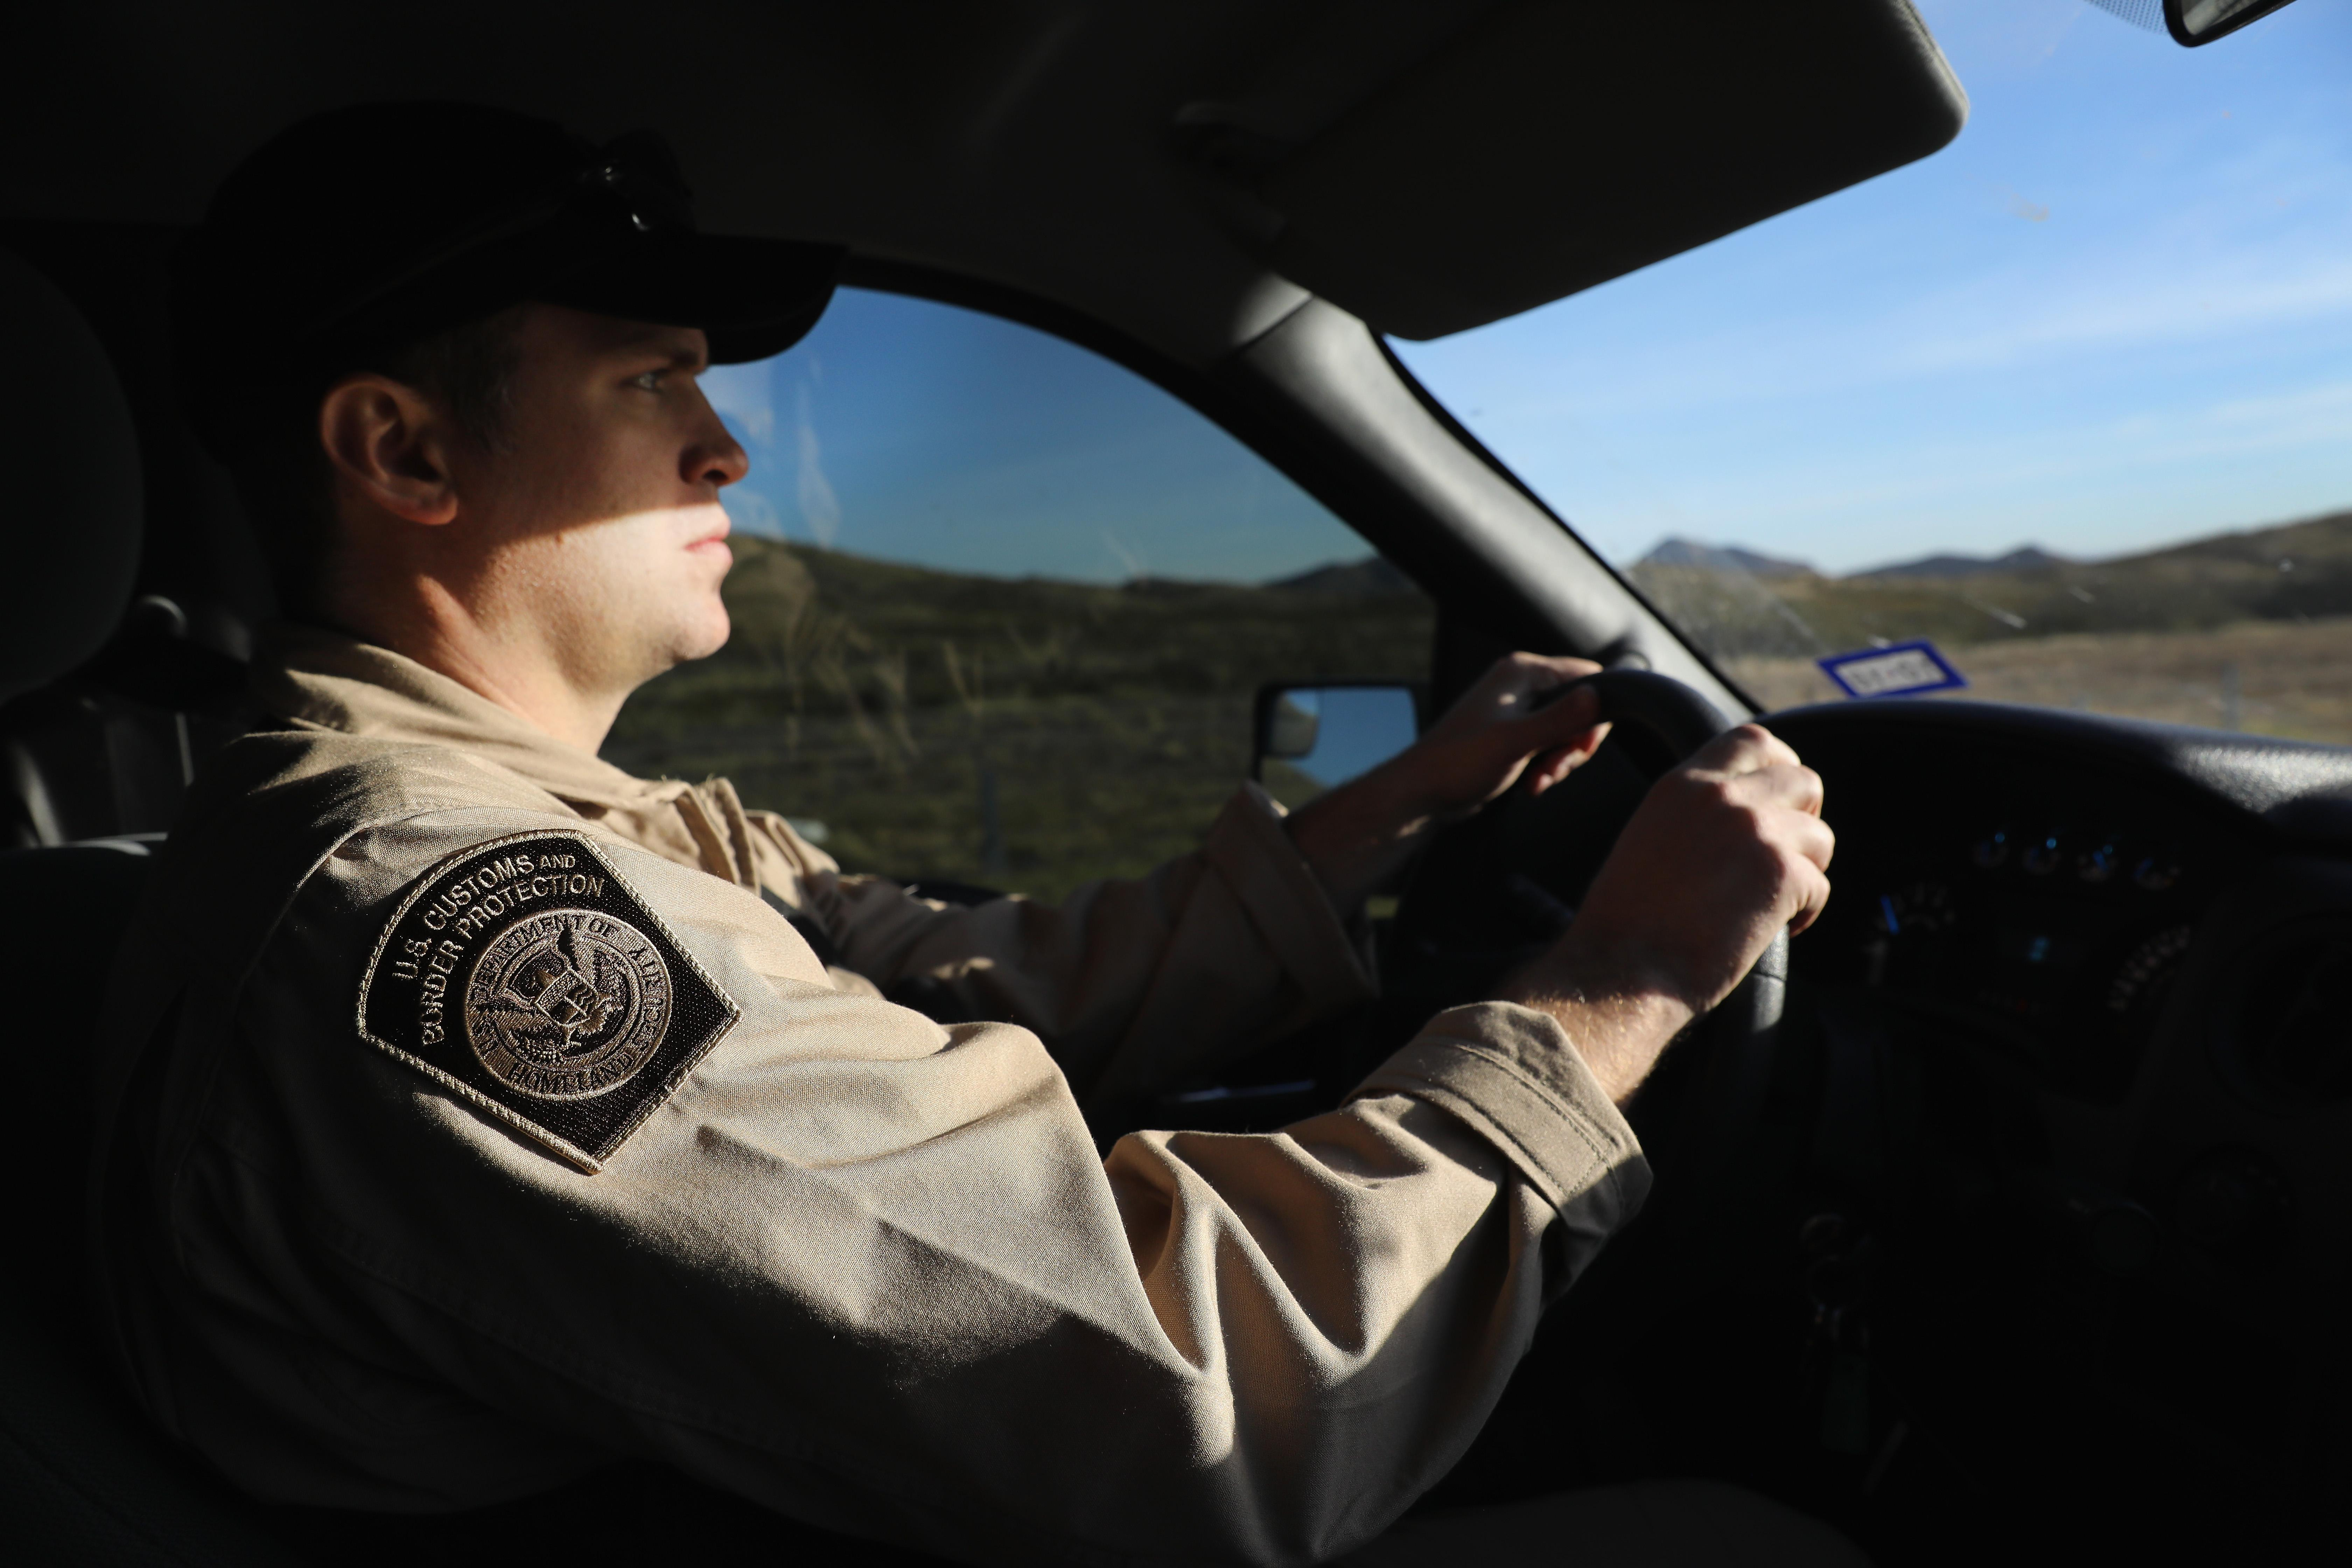 A Customs and Border Protection (CBP) agent drives along Interstate 10 on November 22, 2017 in Van Horn, Texas.